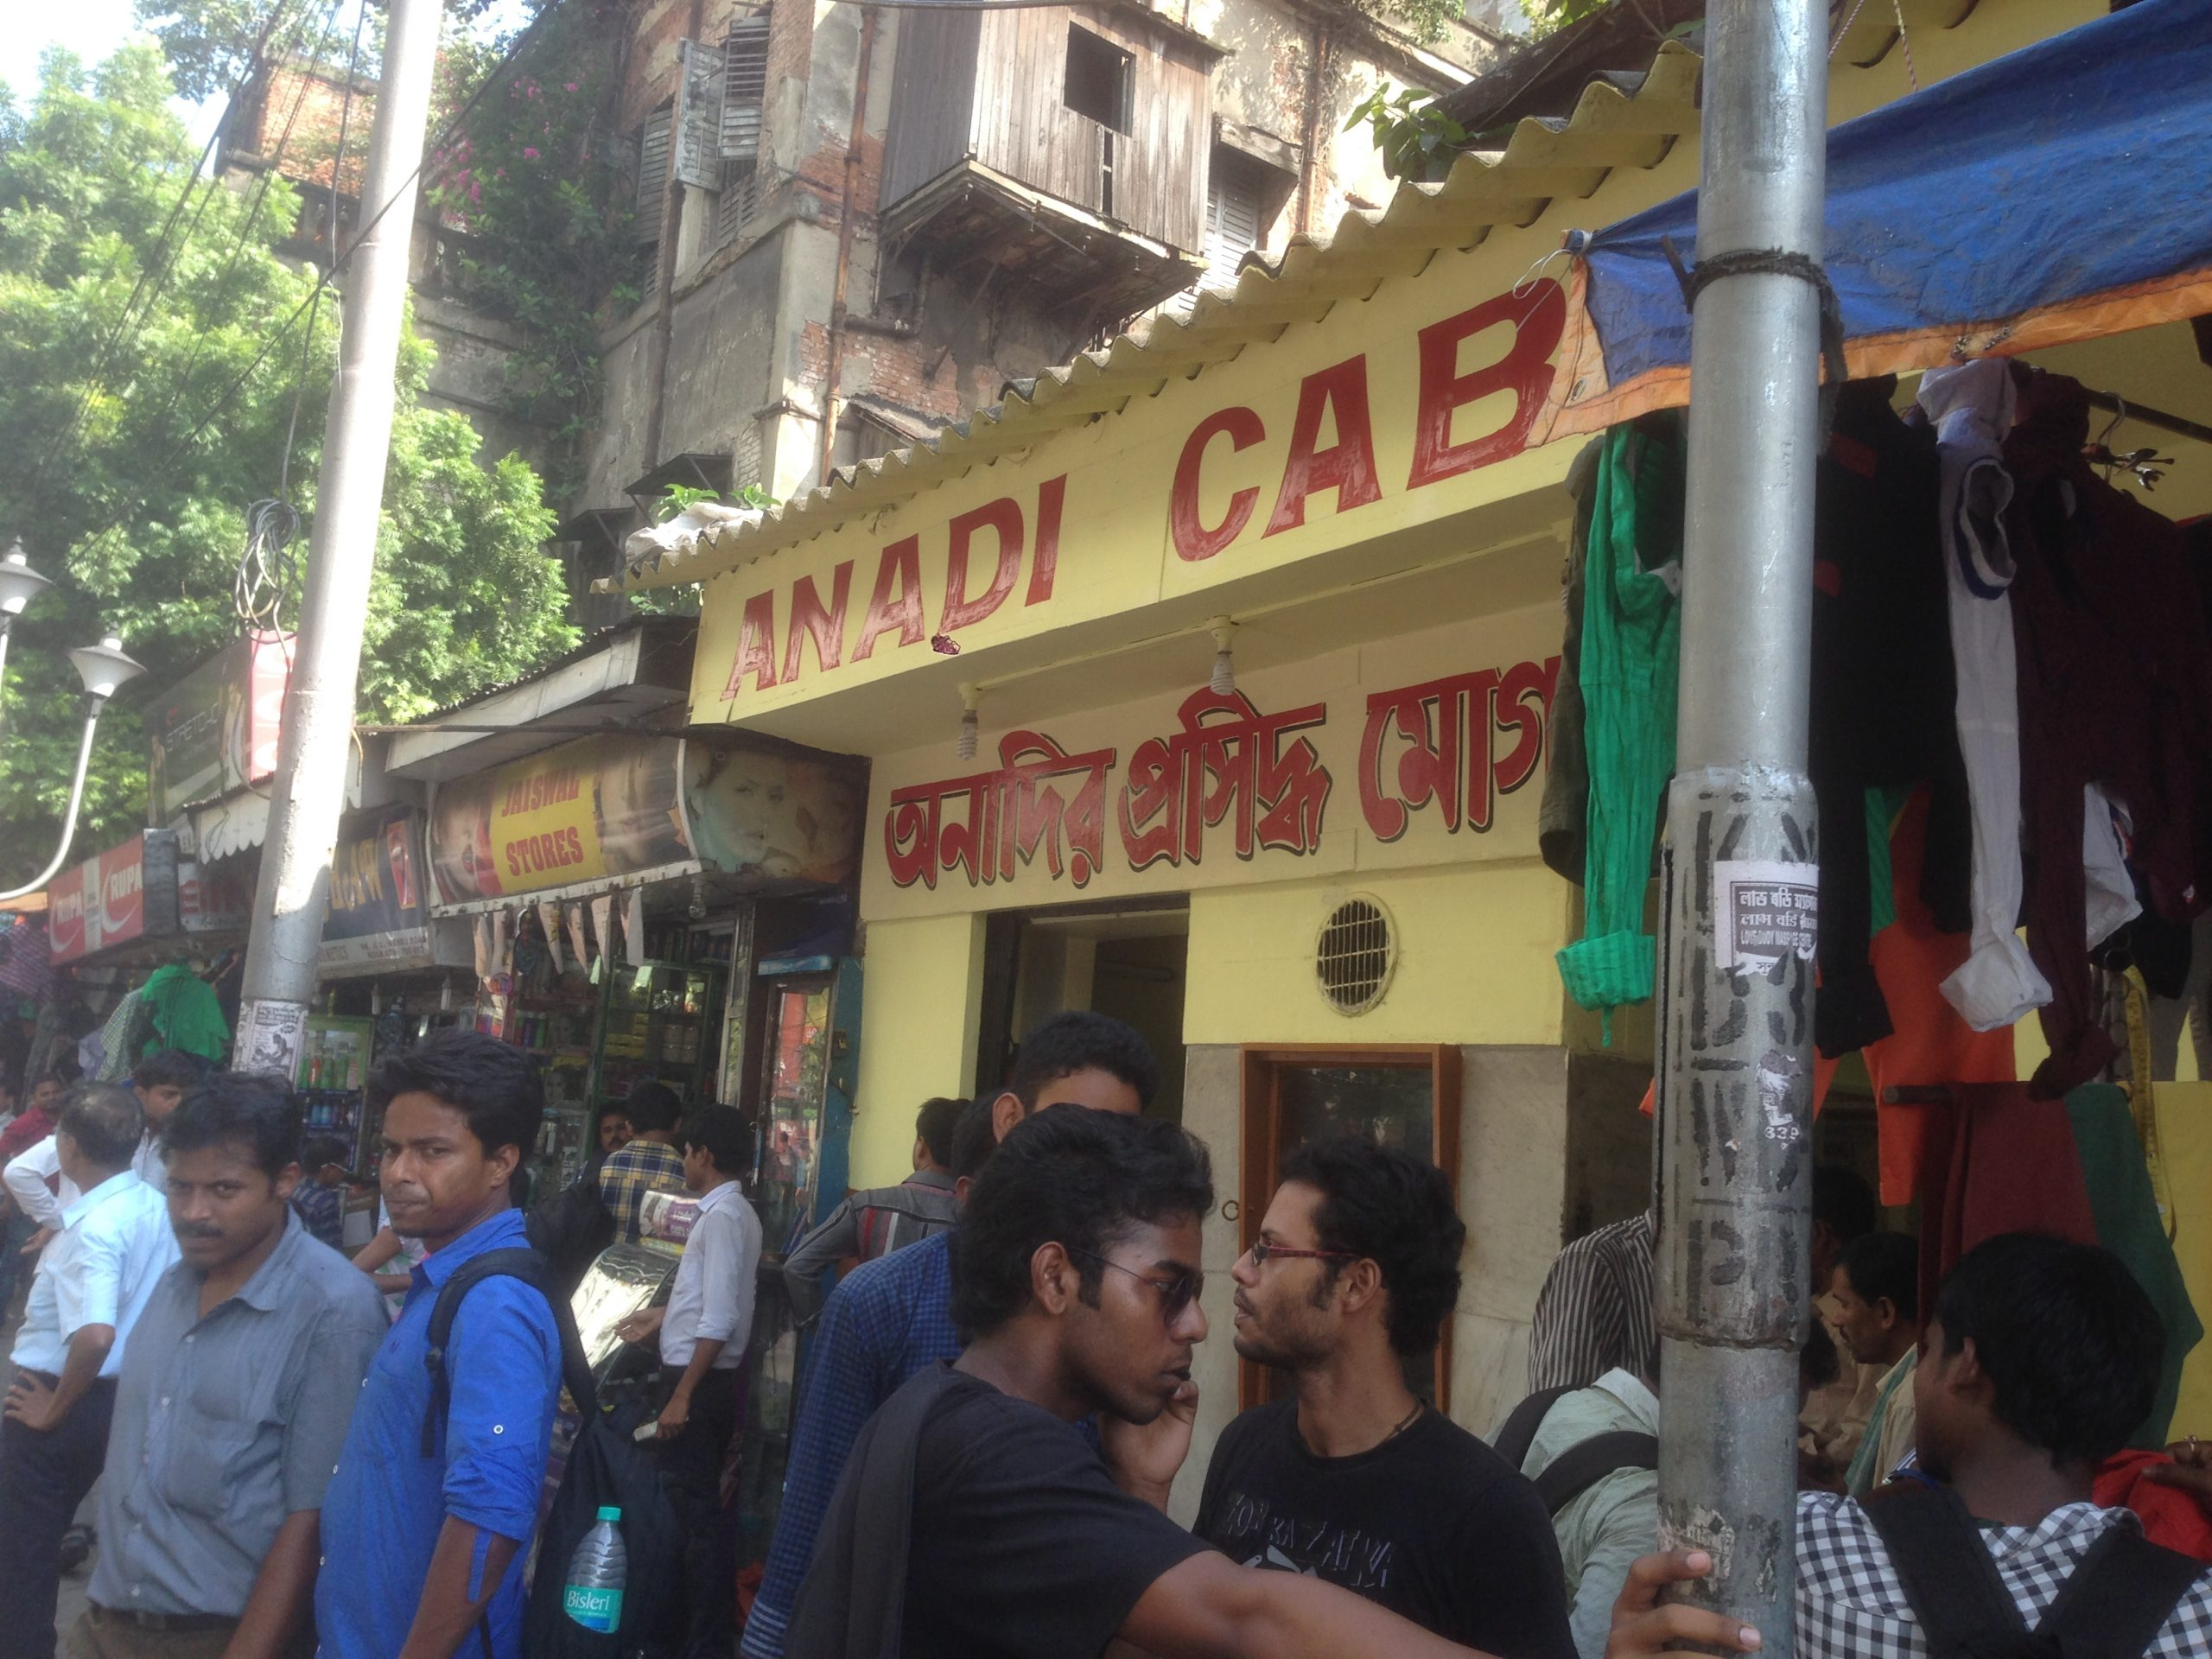 Anadi Cabin - Street Food Shop In Kolkata That Will Make You Drool